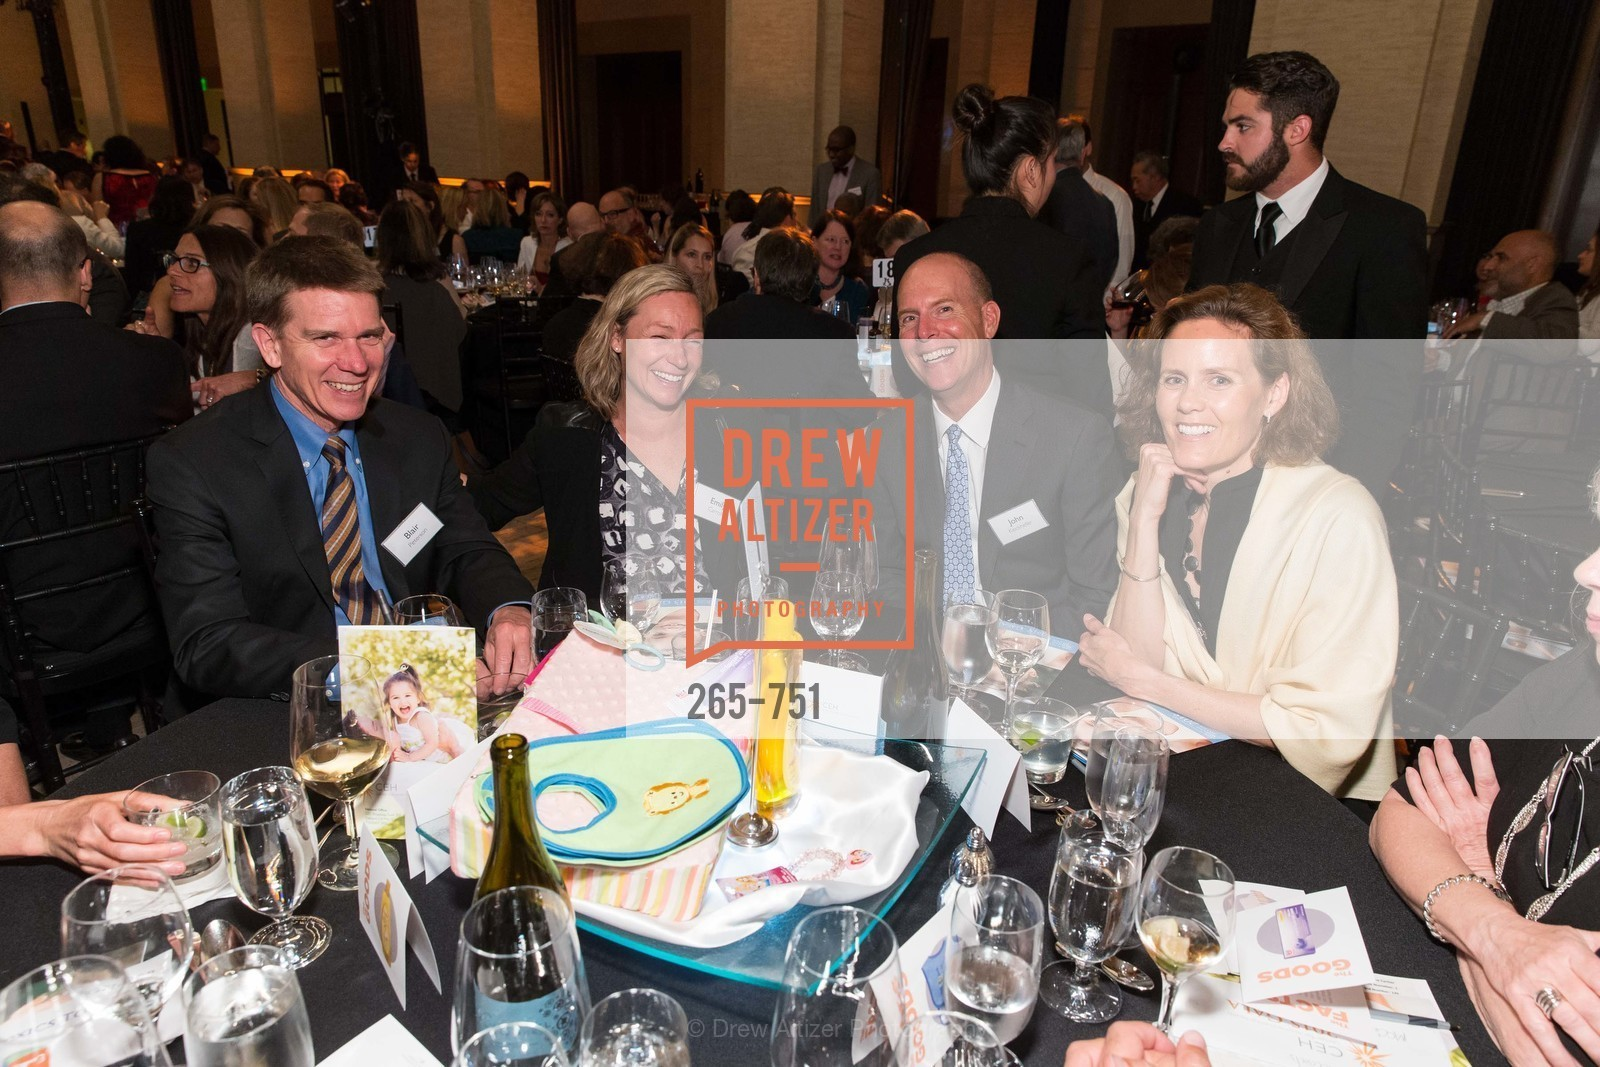 Blair Peterson, Emily Carroll, John Kieckhefer, CENTER FOR ENVIRONMENTAL HEALTH (CEH) 2015 Gala, Bently Reserve, May 28th, 2015,Drew Altizer, Drew Altizer Photography, full-service agency, private events, San Francisco photographer, photographer california